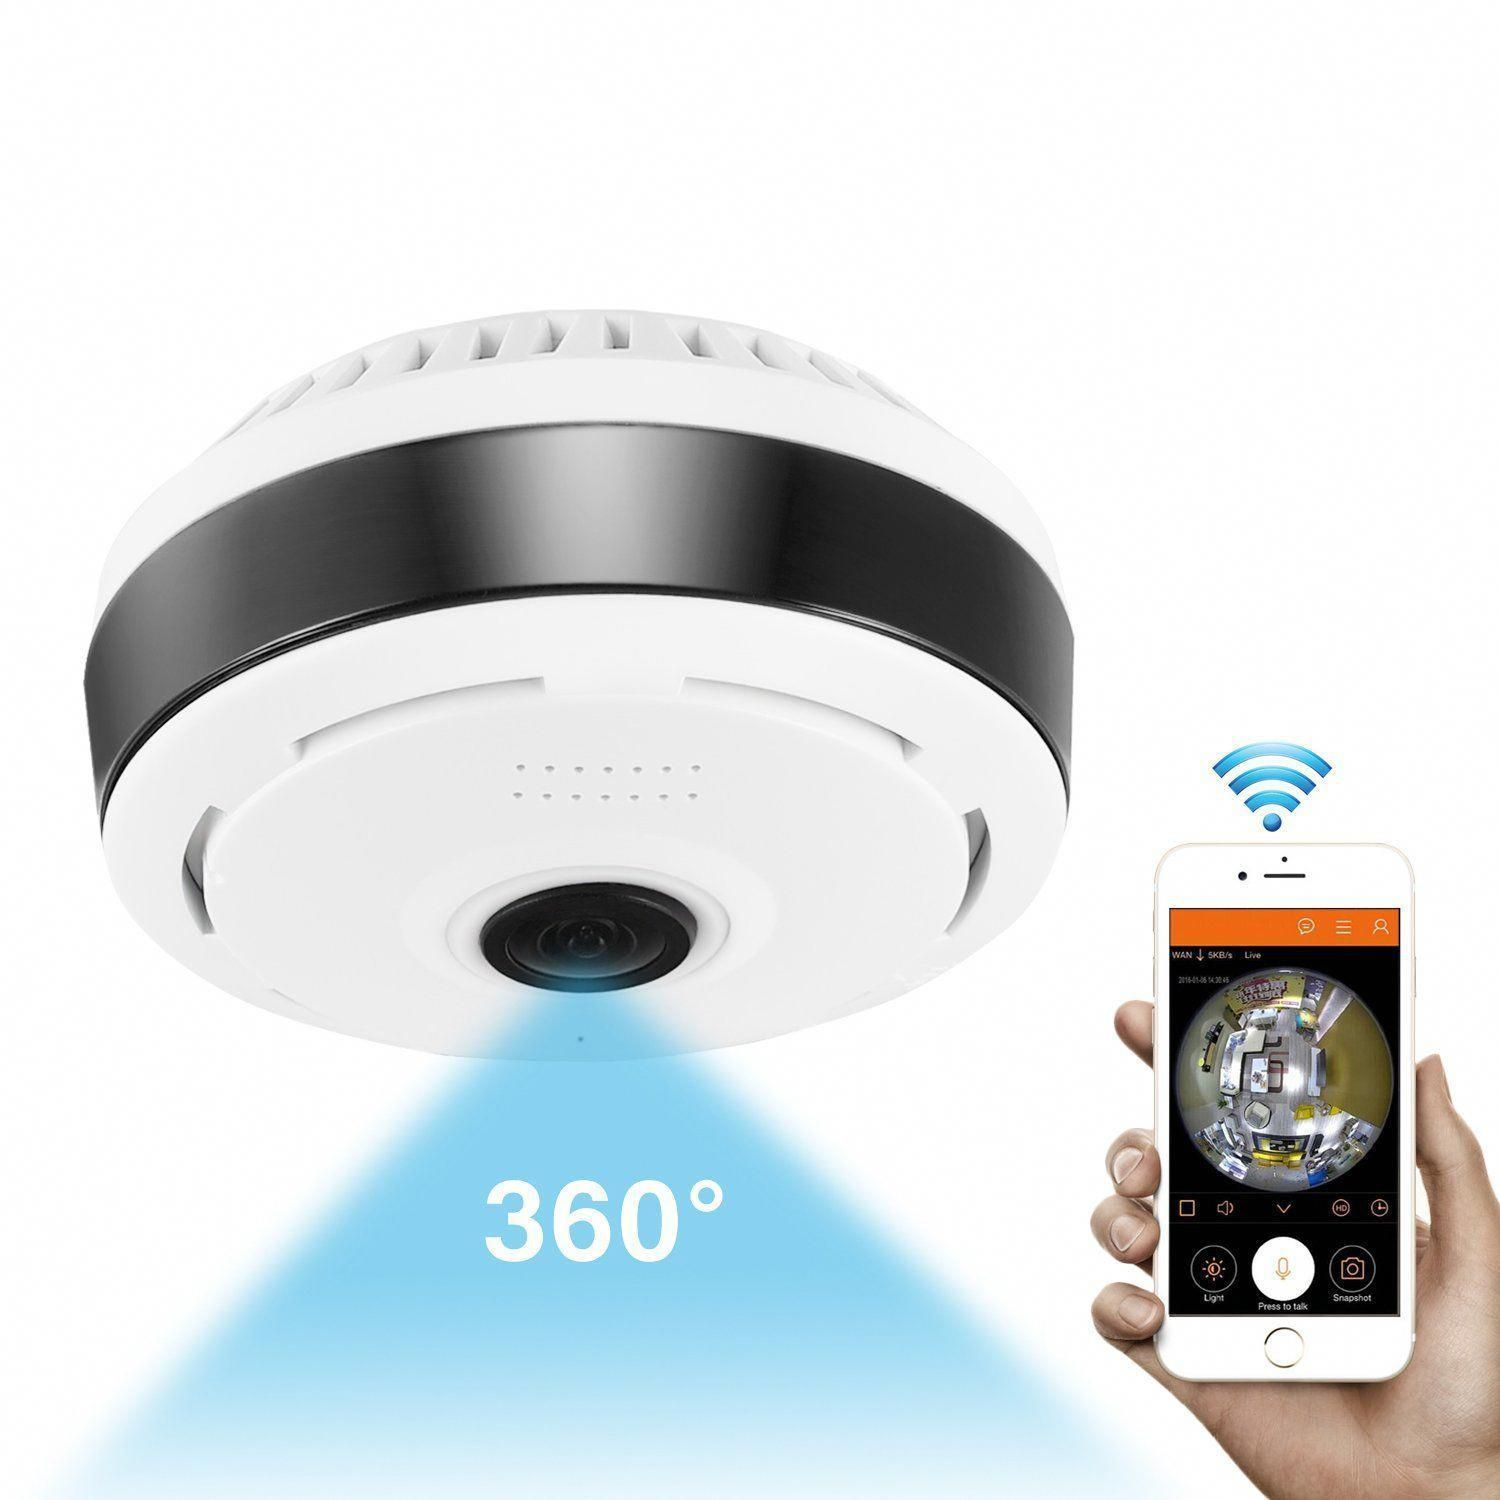 360 Degree Panoramic Camera Wifi Indoor Ip Camera Wireless Fisheye Baby Monit Security Cameras For Home Home Security Camera Systems Video Surveillance Cameras